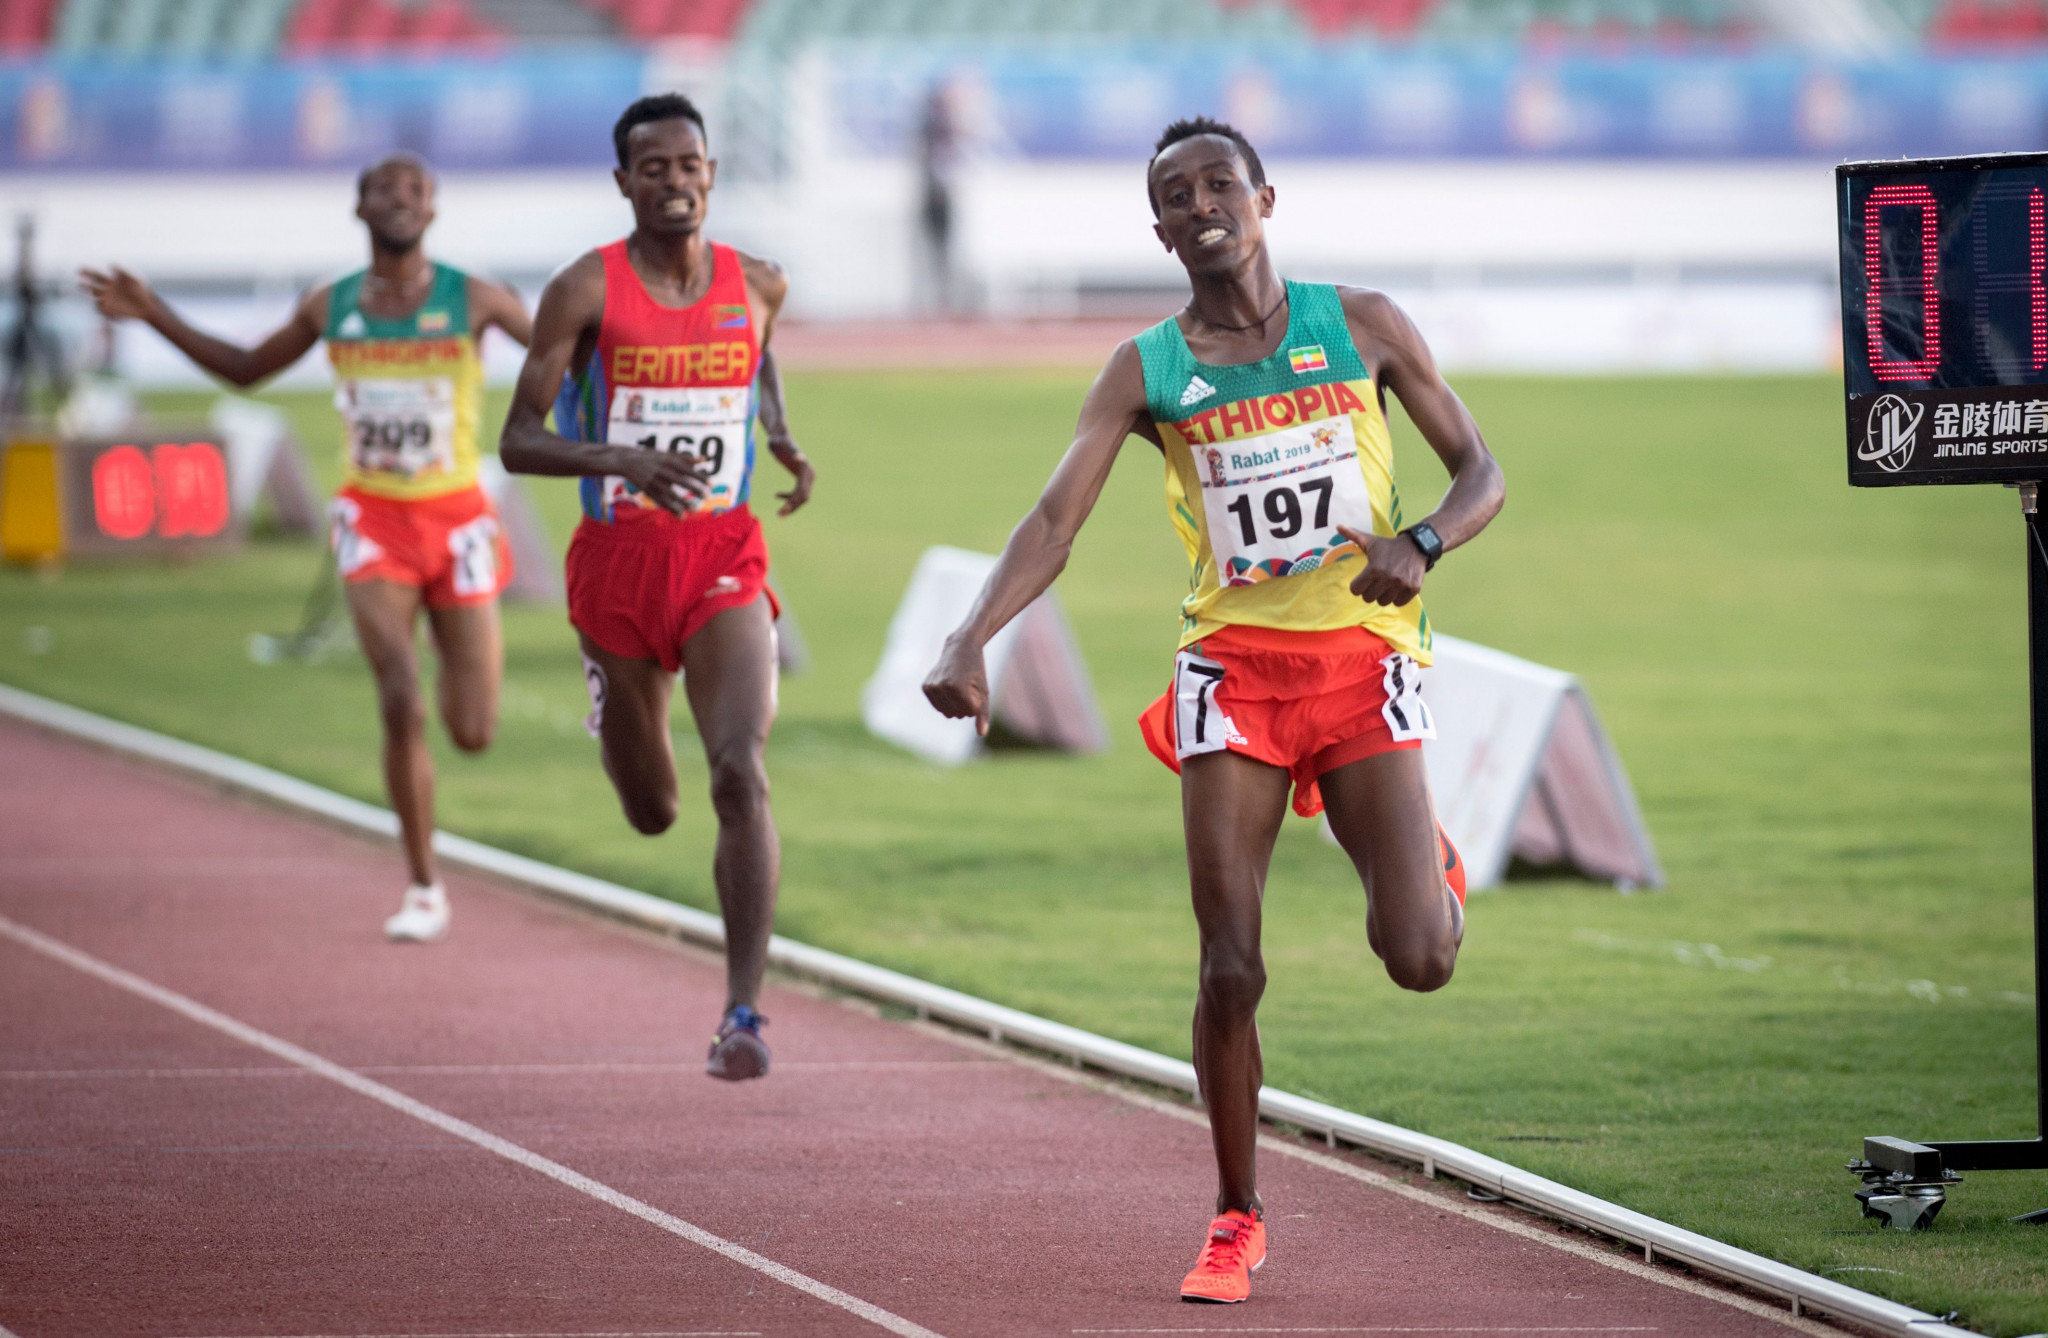 Berehanu Tsegu triumphed in the 10,000 metre competition at the 2019 African Games in Morocco ©Getty Images